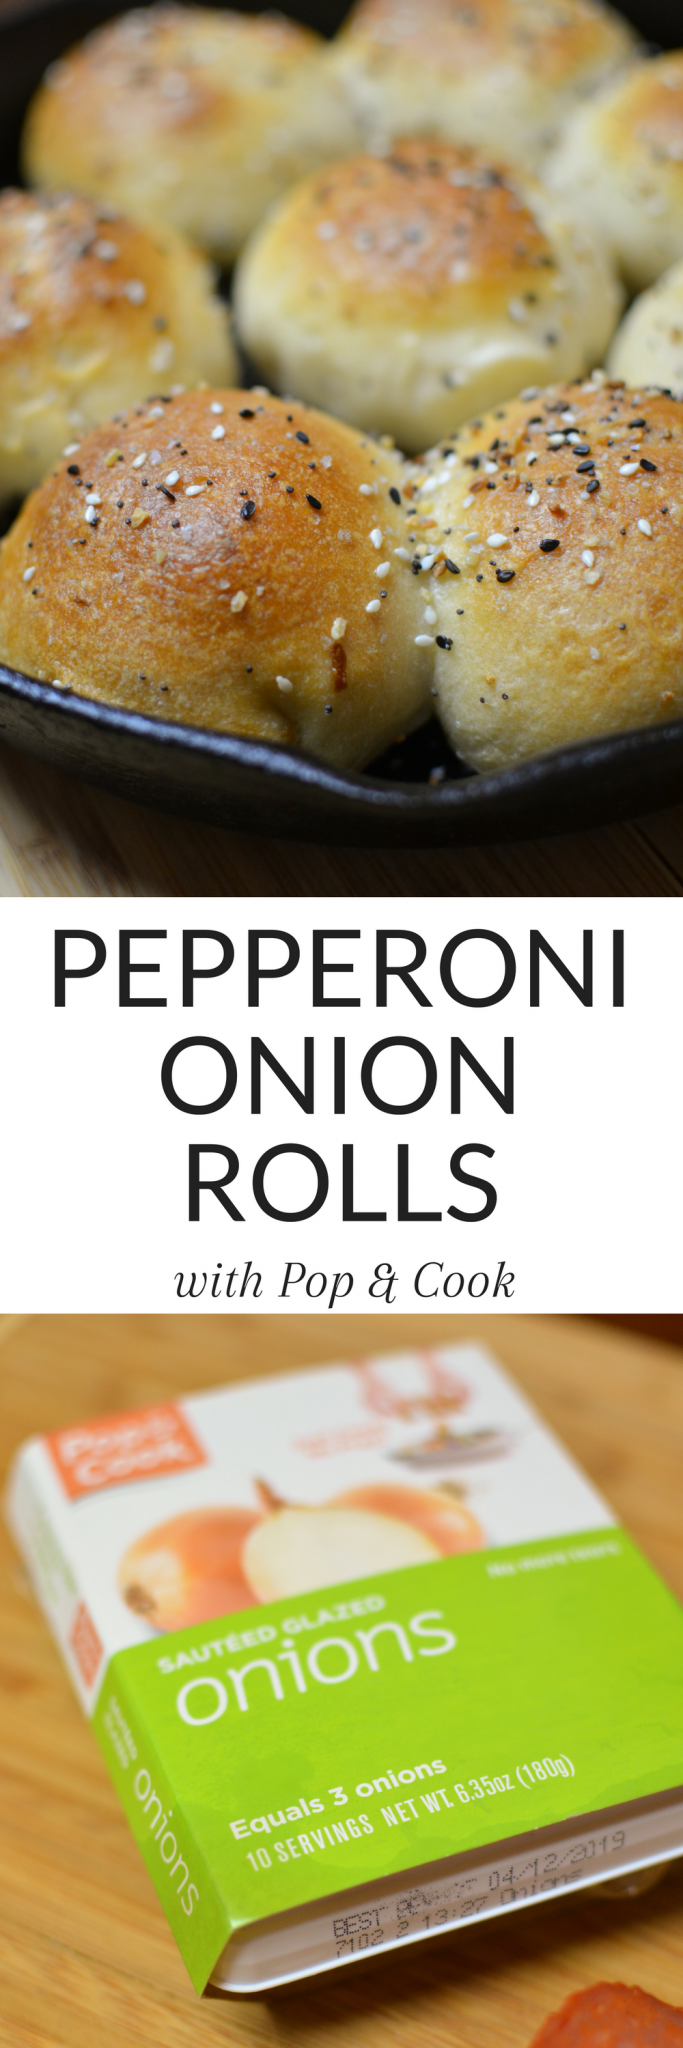 #AD These Pepperoni Onion Rolls are the perfect savory treat! So easy and they come together quickly with a great shortcut - head to the blog for the recipe and video! #rolls #pepperoni #onion #baking